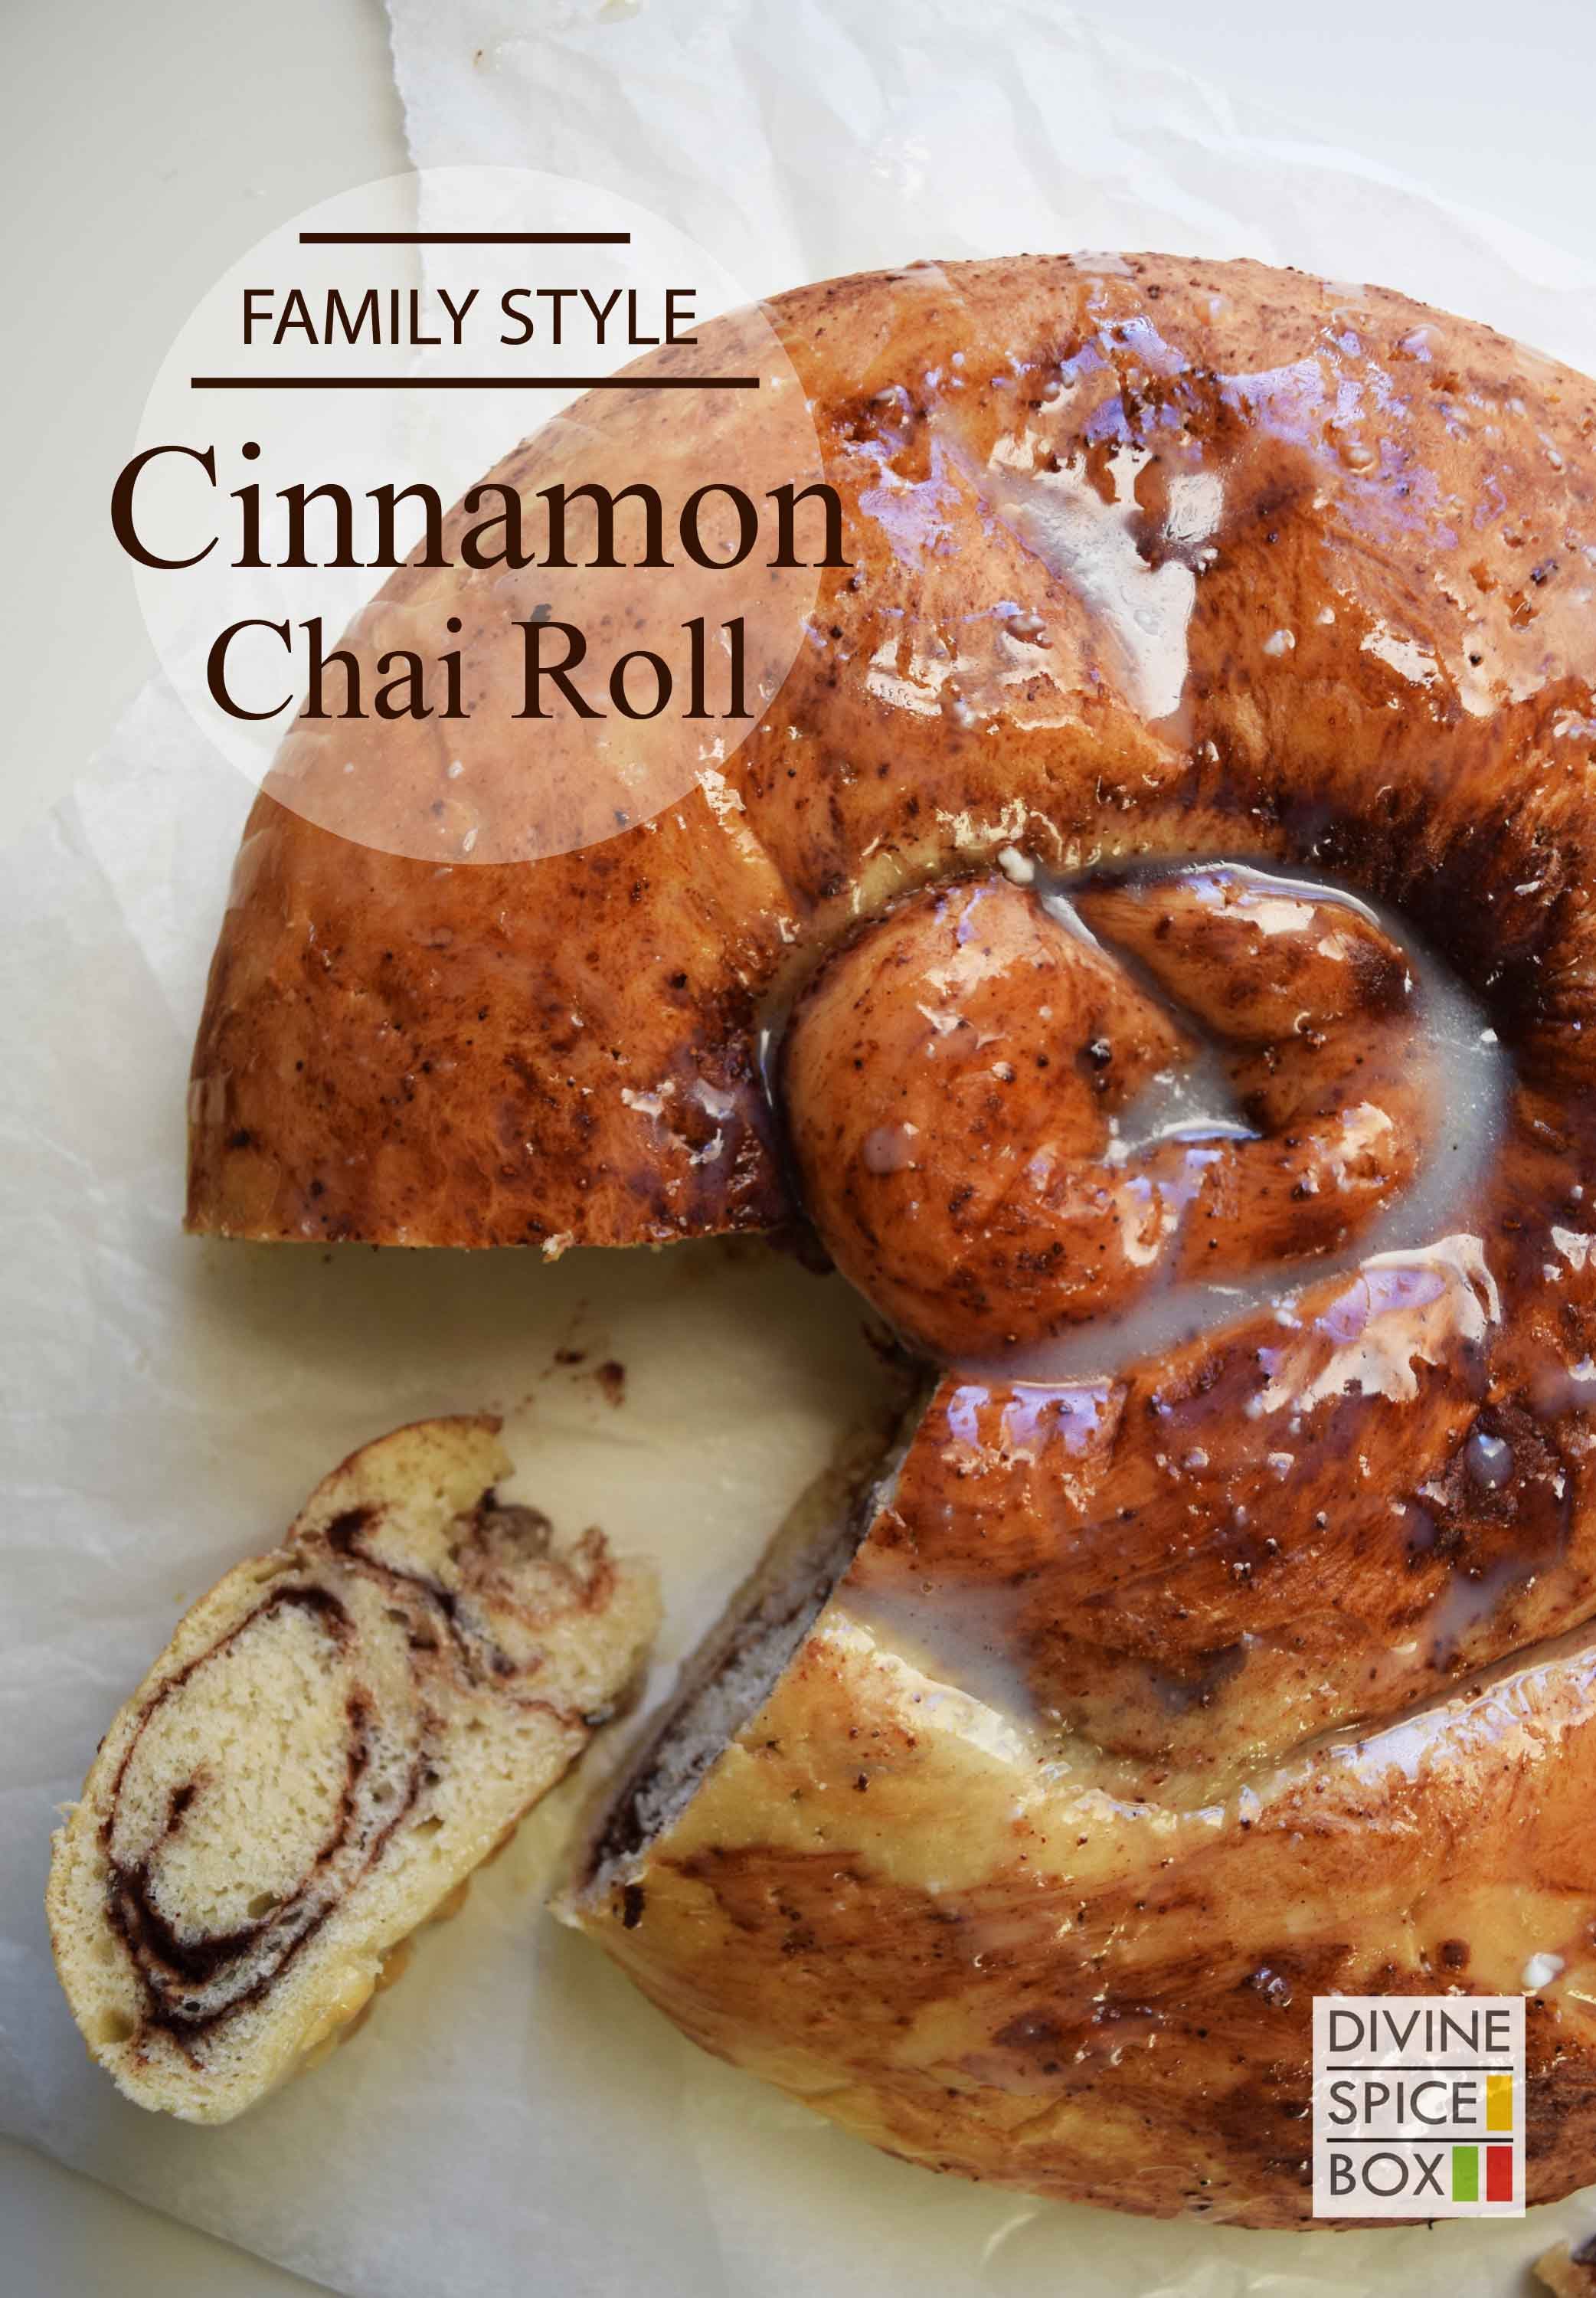 Cinnamon roll copy